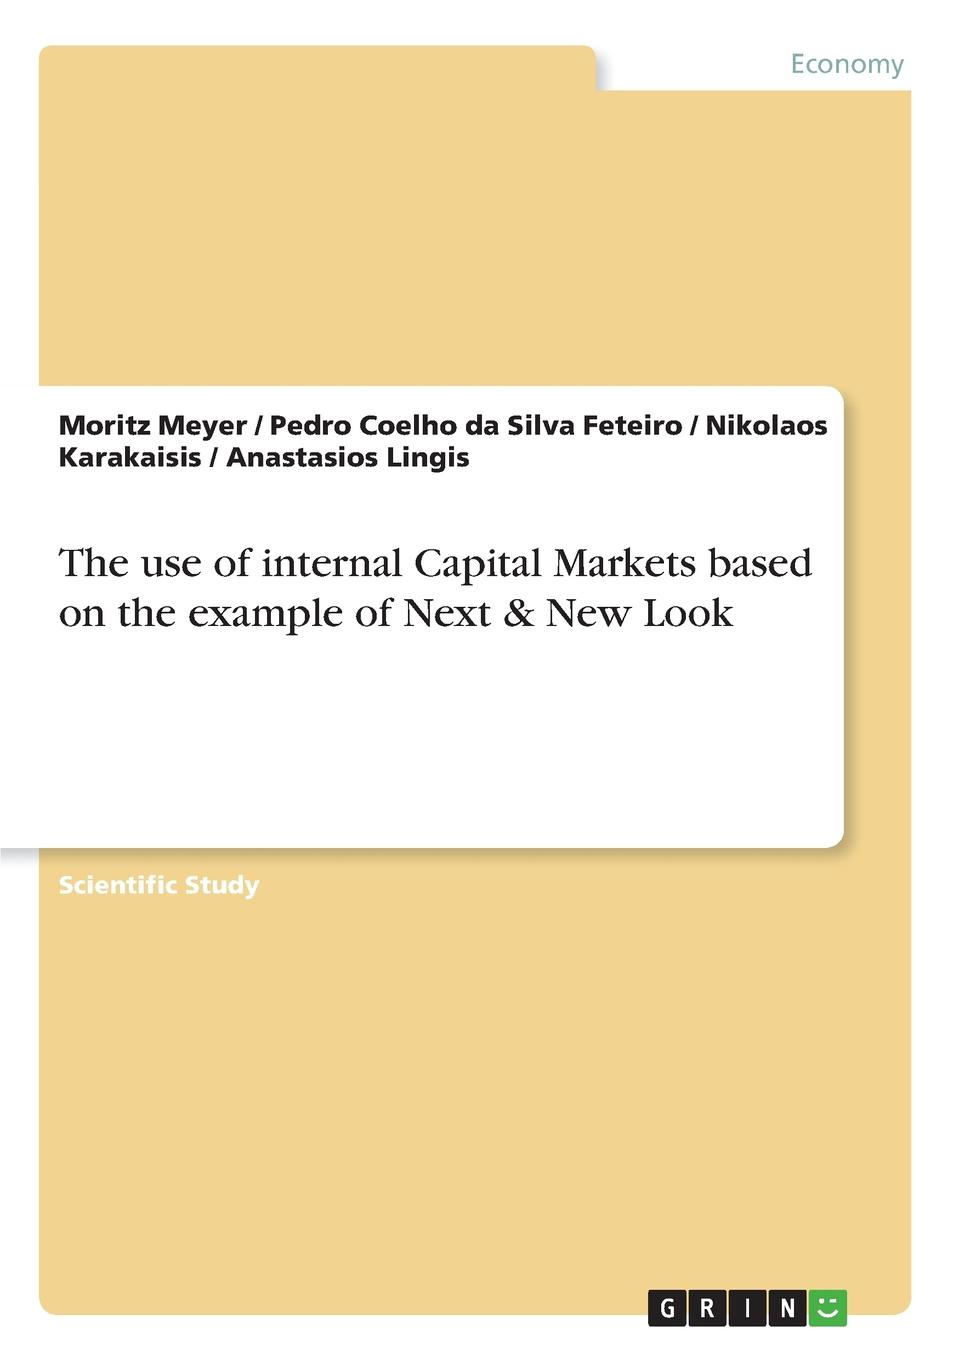 Moritz Meyer, Pedro Coelho da Silva Feteiro, Nikolaos Karakaisis The use of internal Capital Markets based on the example of Next . New Look